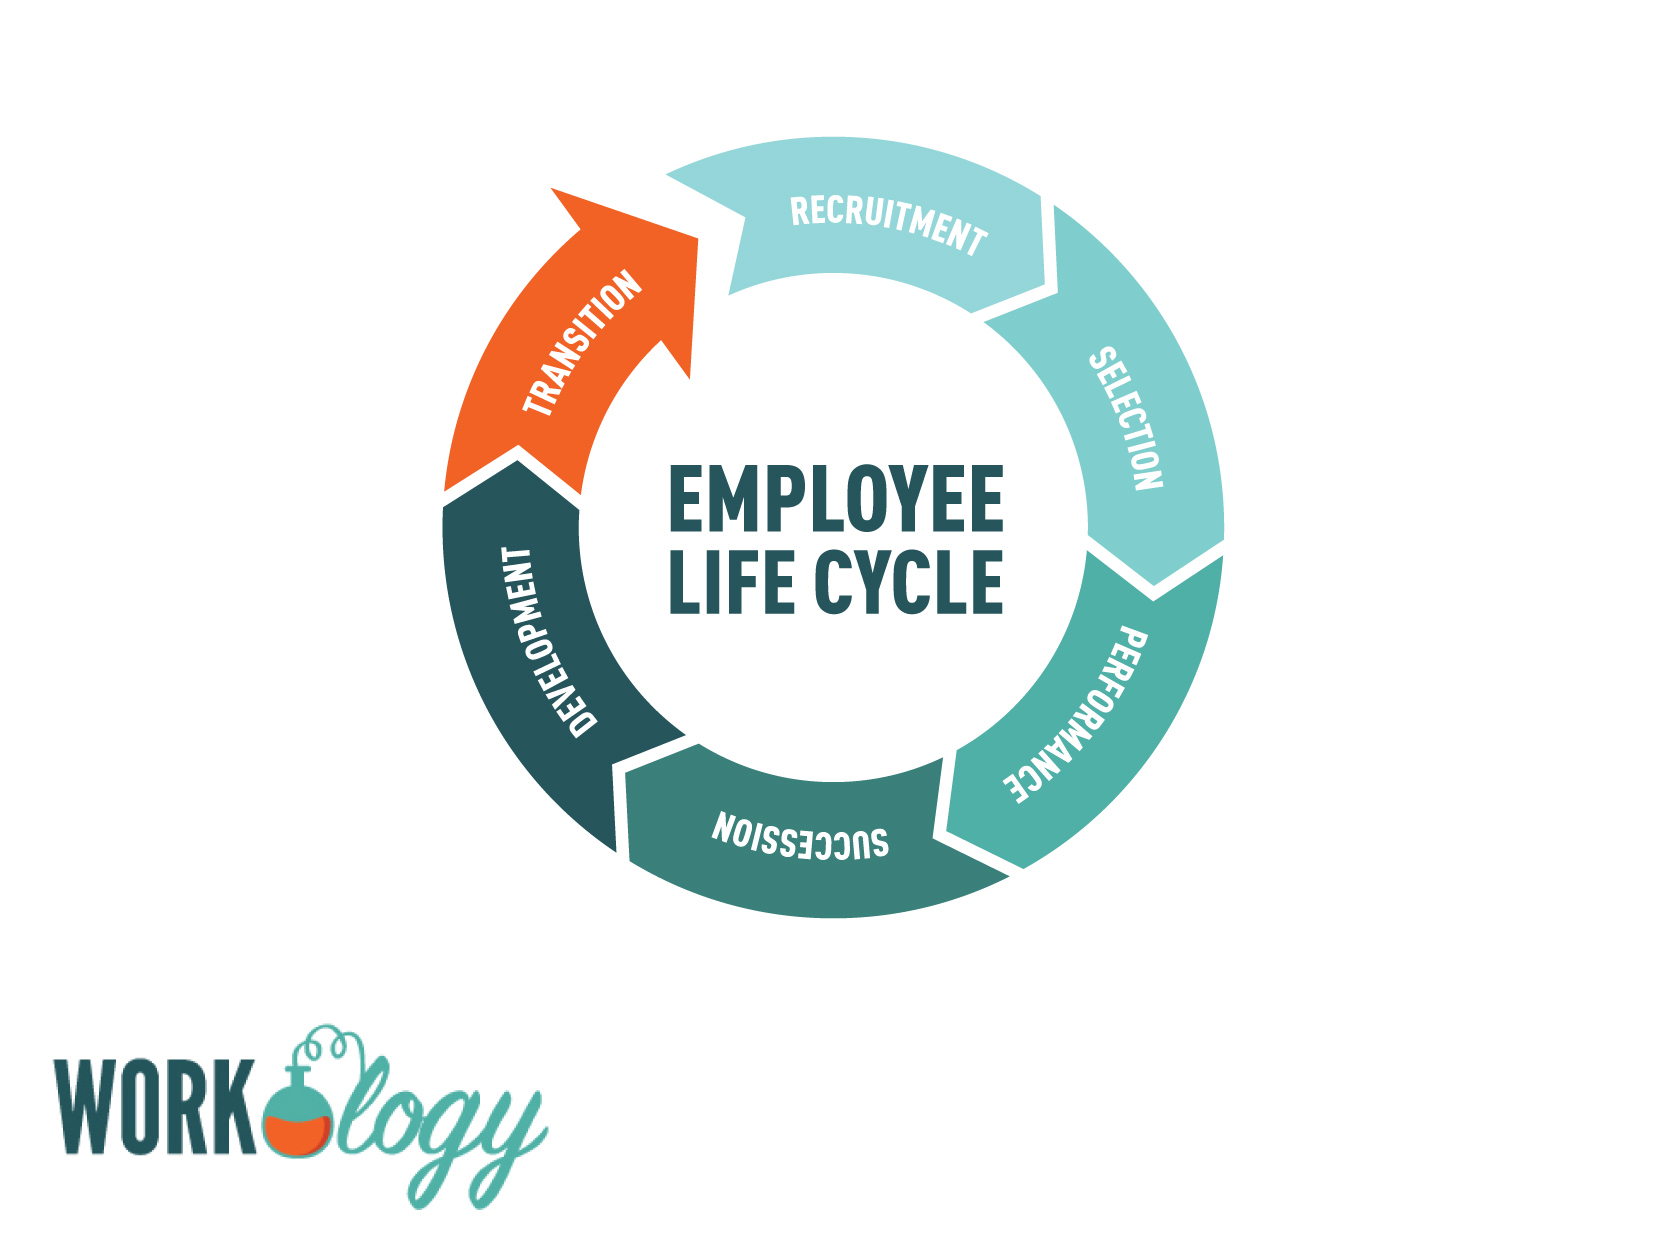 hr life cycle process The employee life cycle is a human resources tool meant to identify stages in the career of the employee in order to adjust their management and optimize the resources at a given time  hr should be instructed about the interview process, with a clear description of the intended role and responsibility.